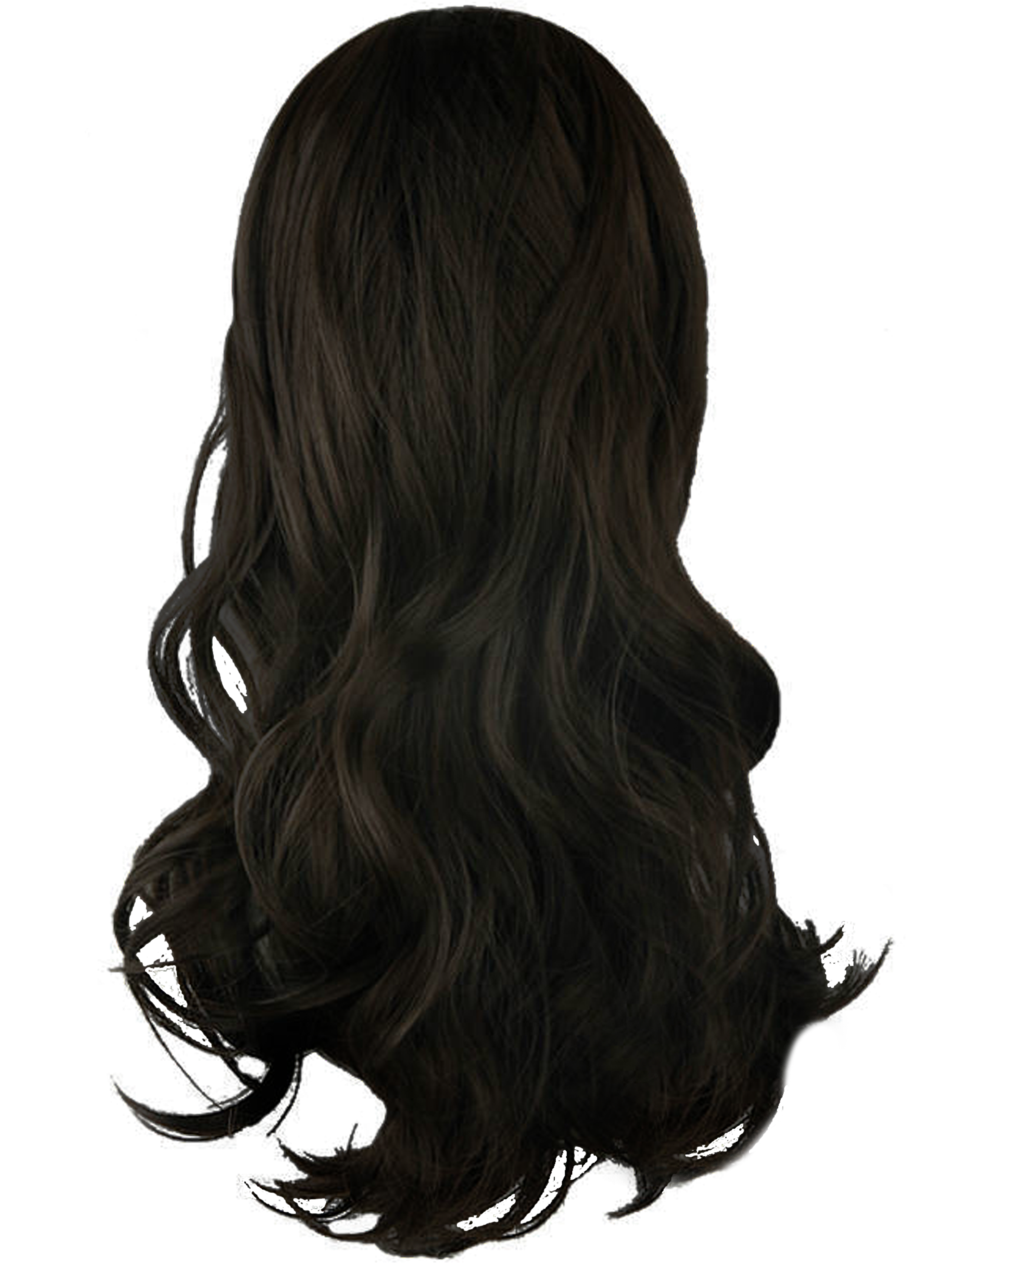 Png images women and. Hair clipart realistic